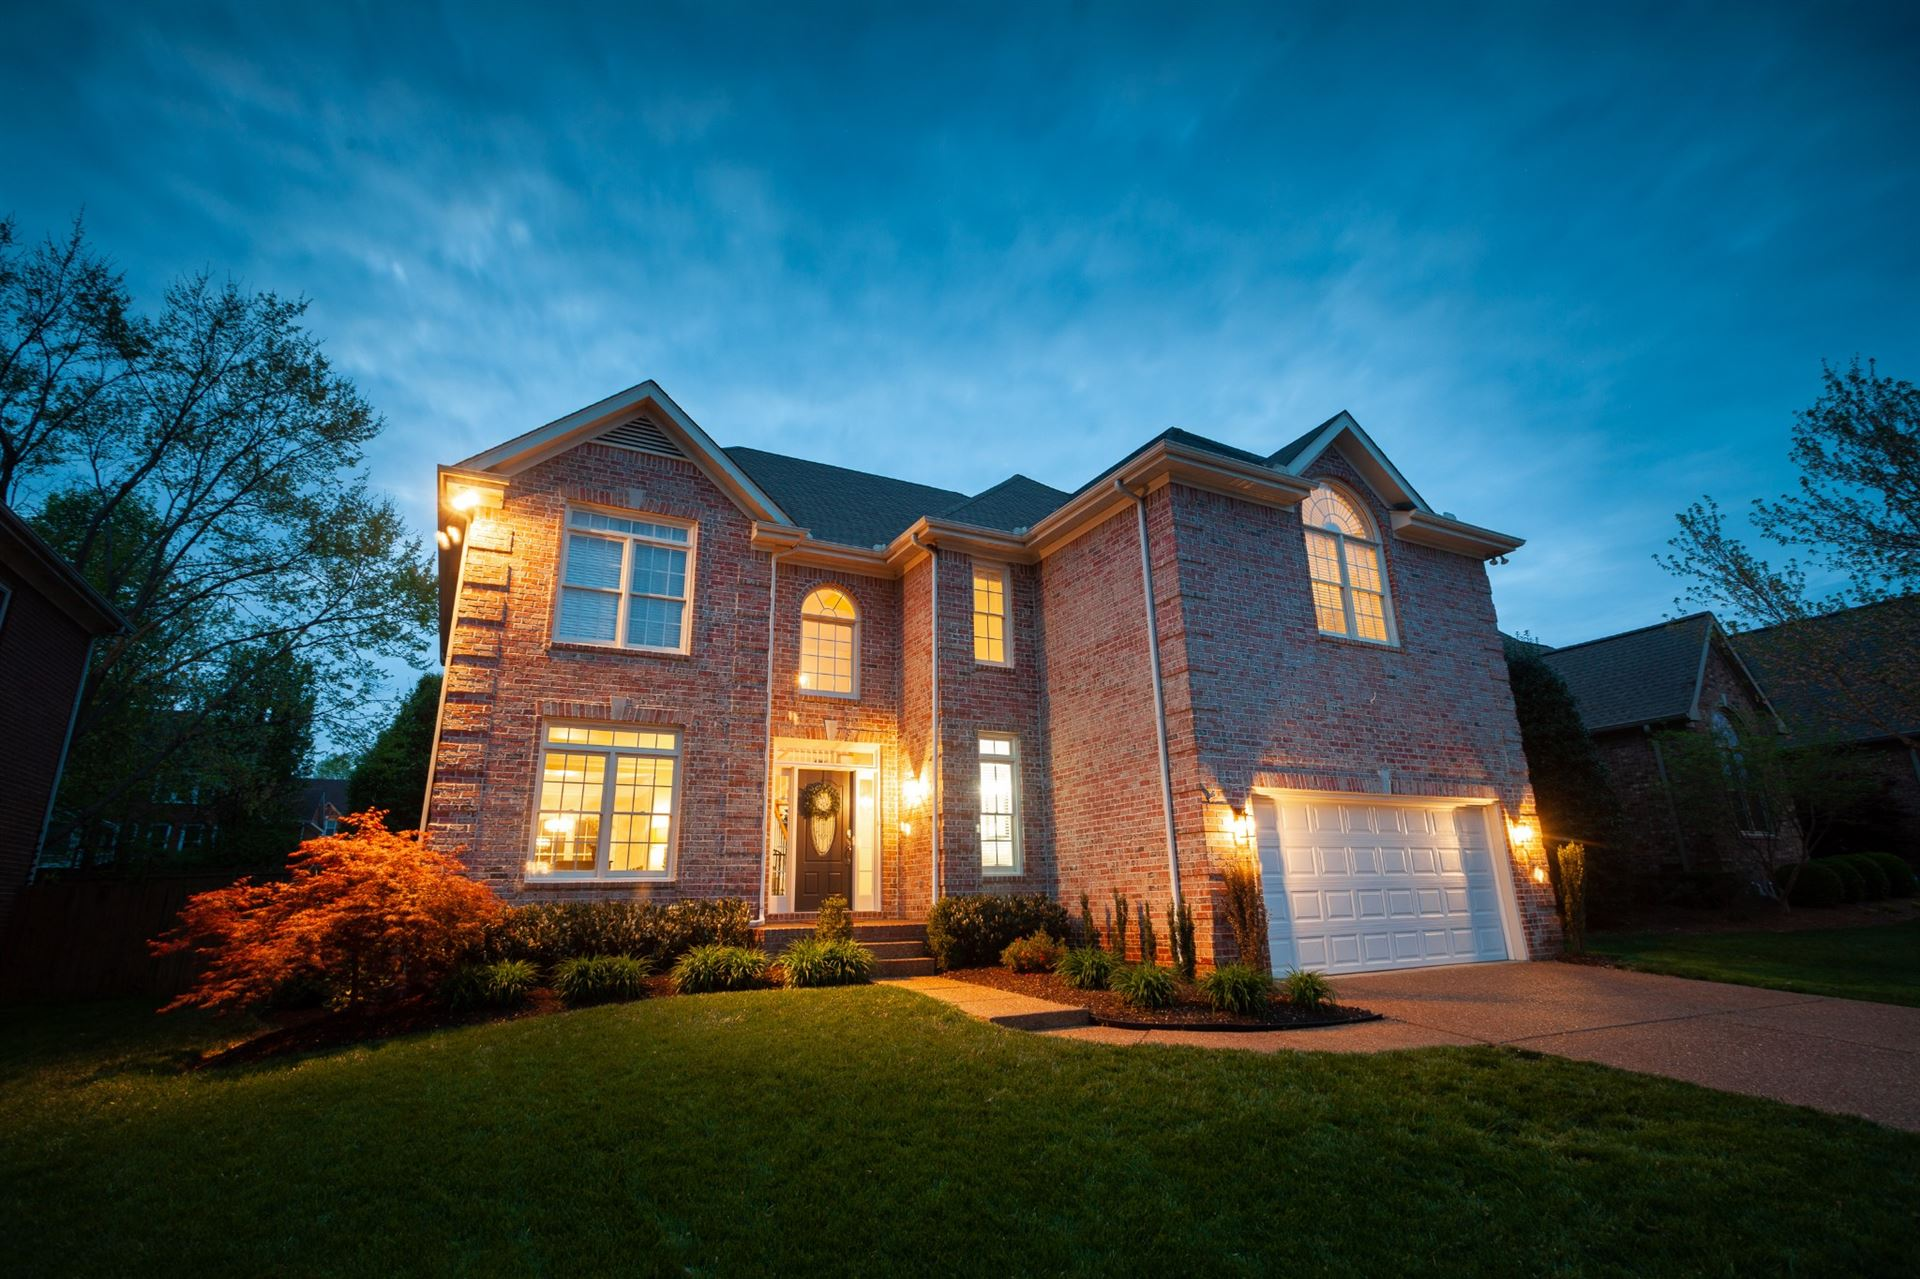 209 Karnes Drive, Franklin, TN 37064 - MLS#: 2244851